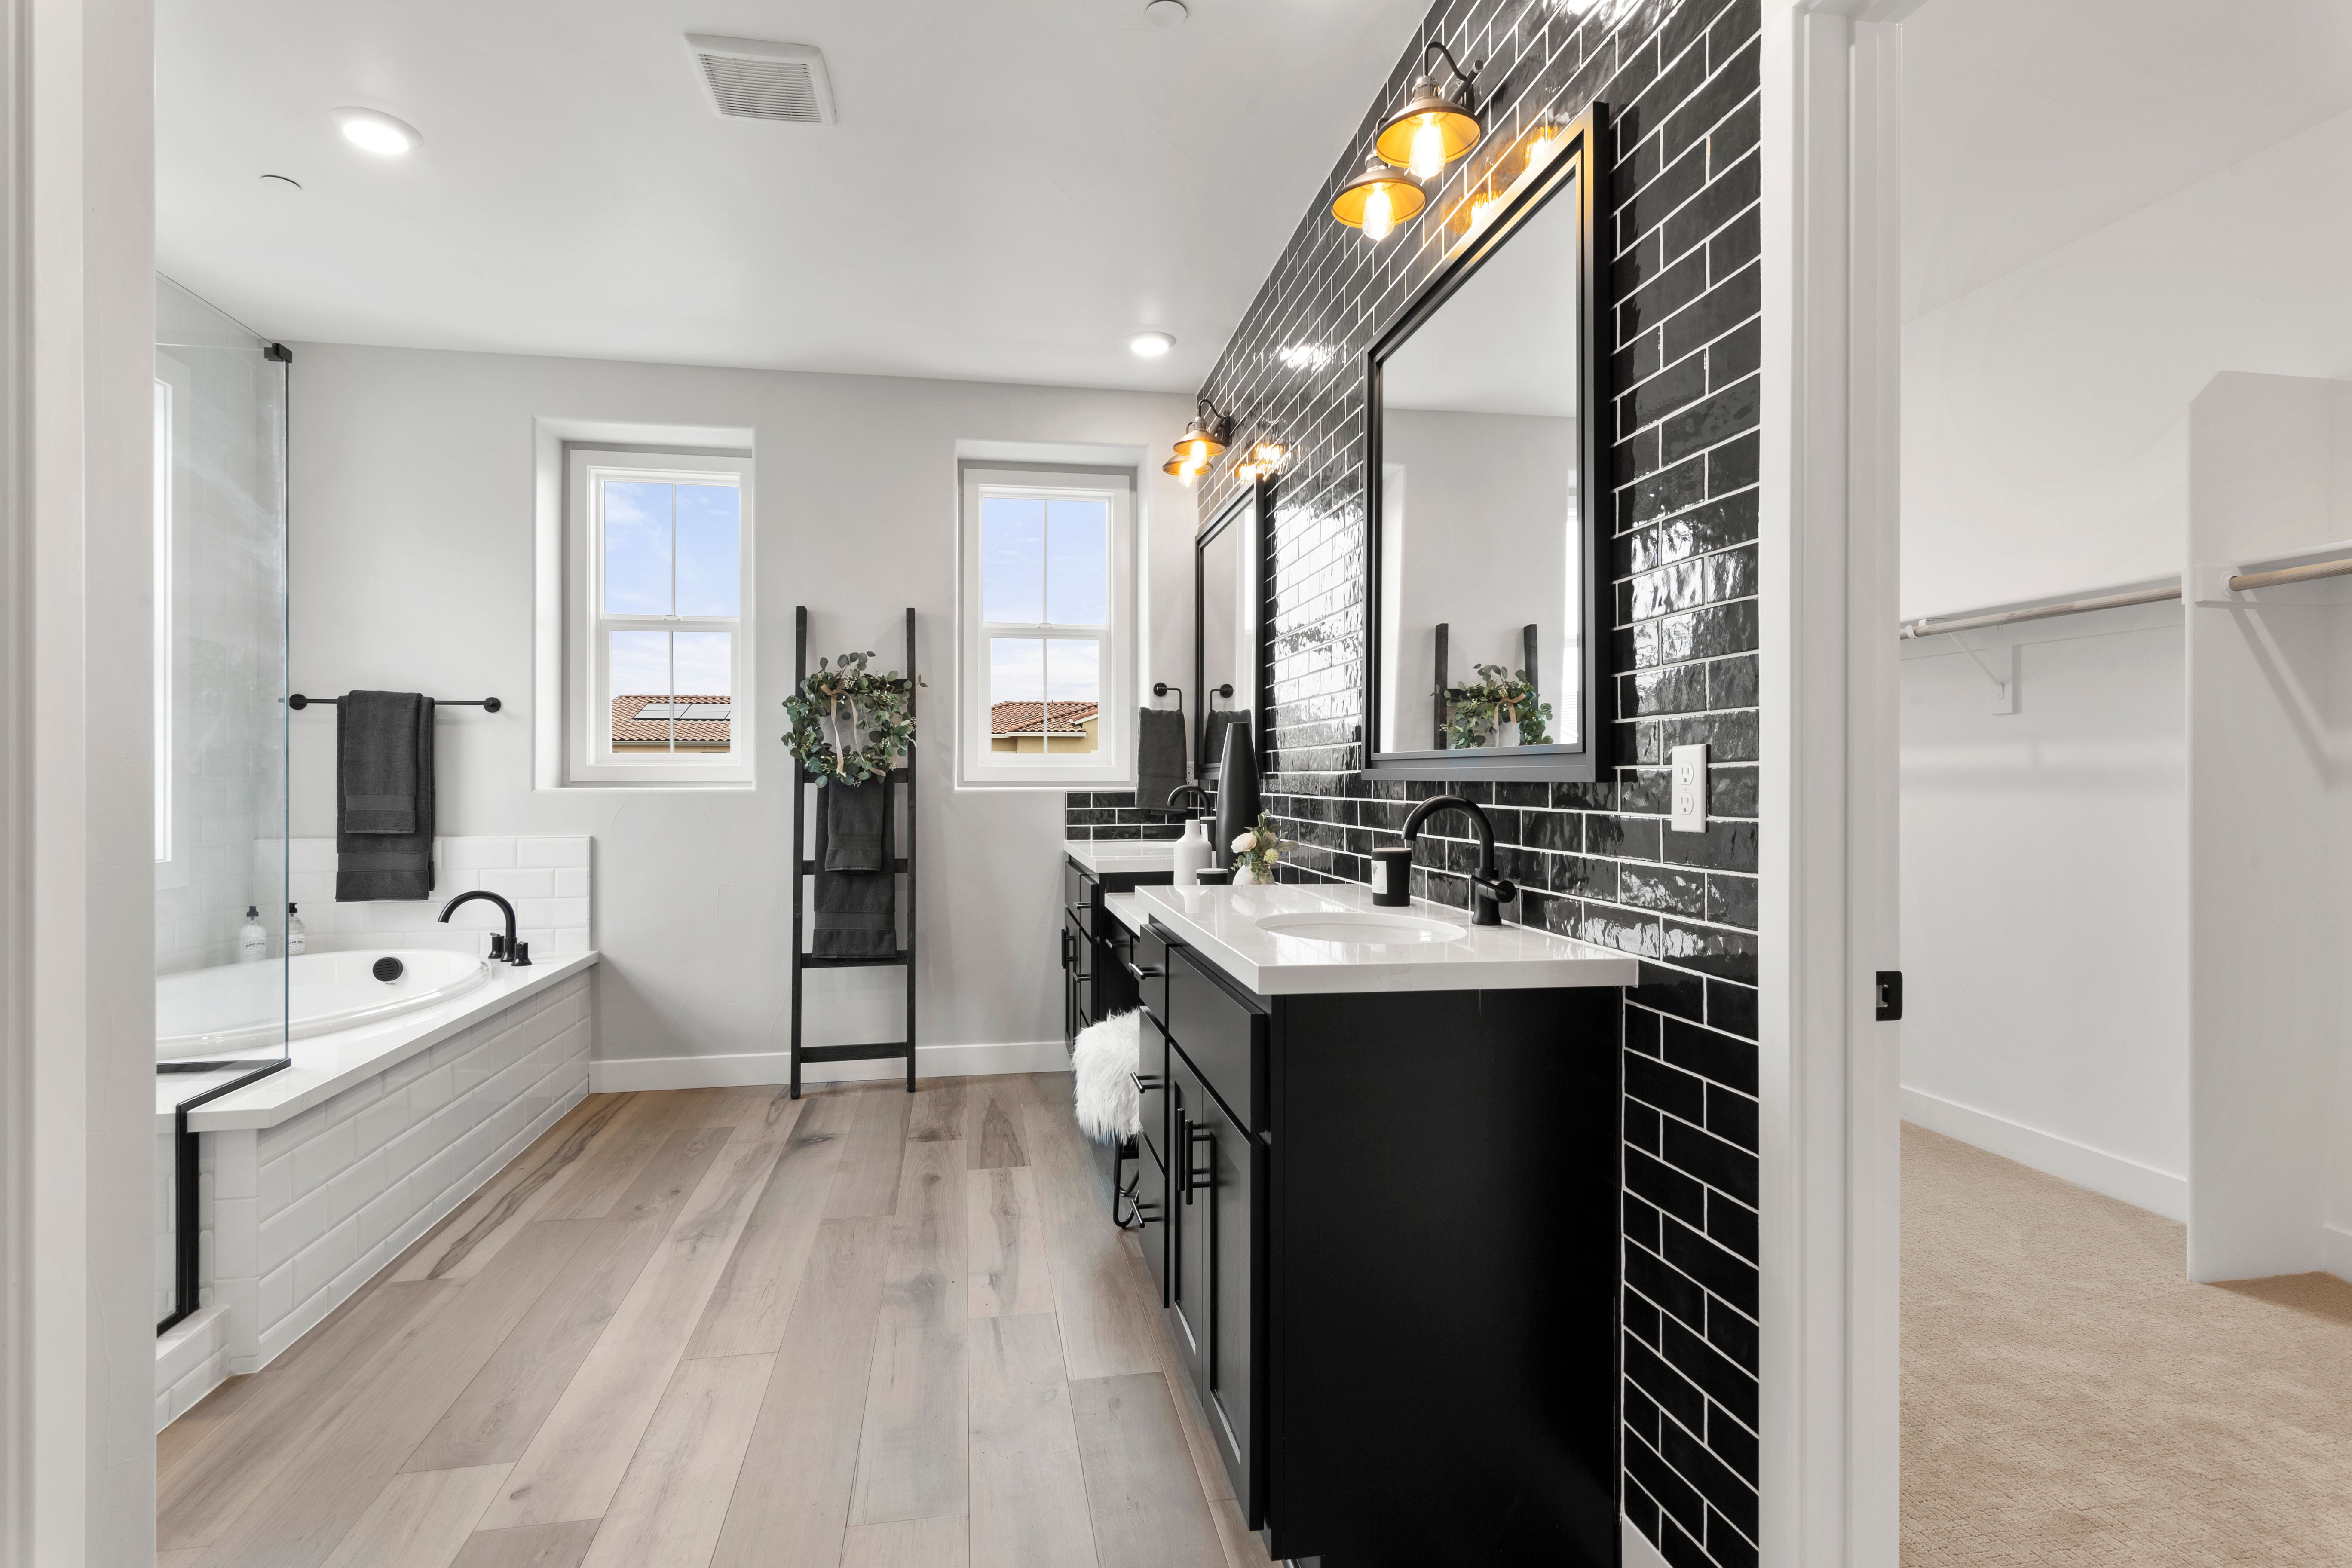 Bathroom featured in the Millstone Residence 2 By BlackPine Communites in Sacramento, CA